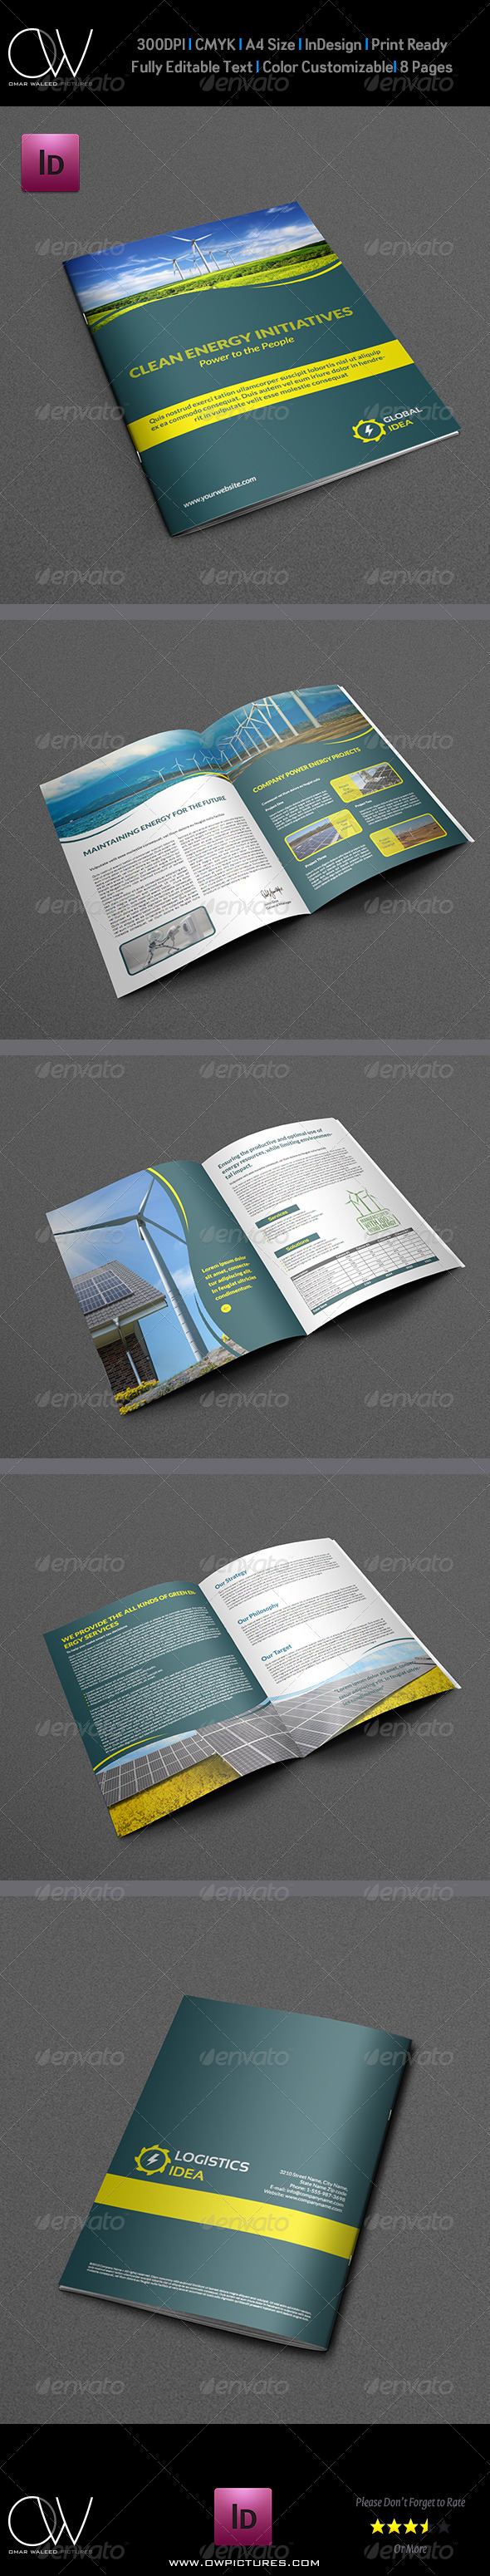 GraphicRiver Power Energy Services Brochure Template 5283131